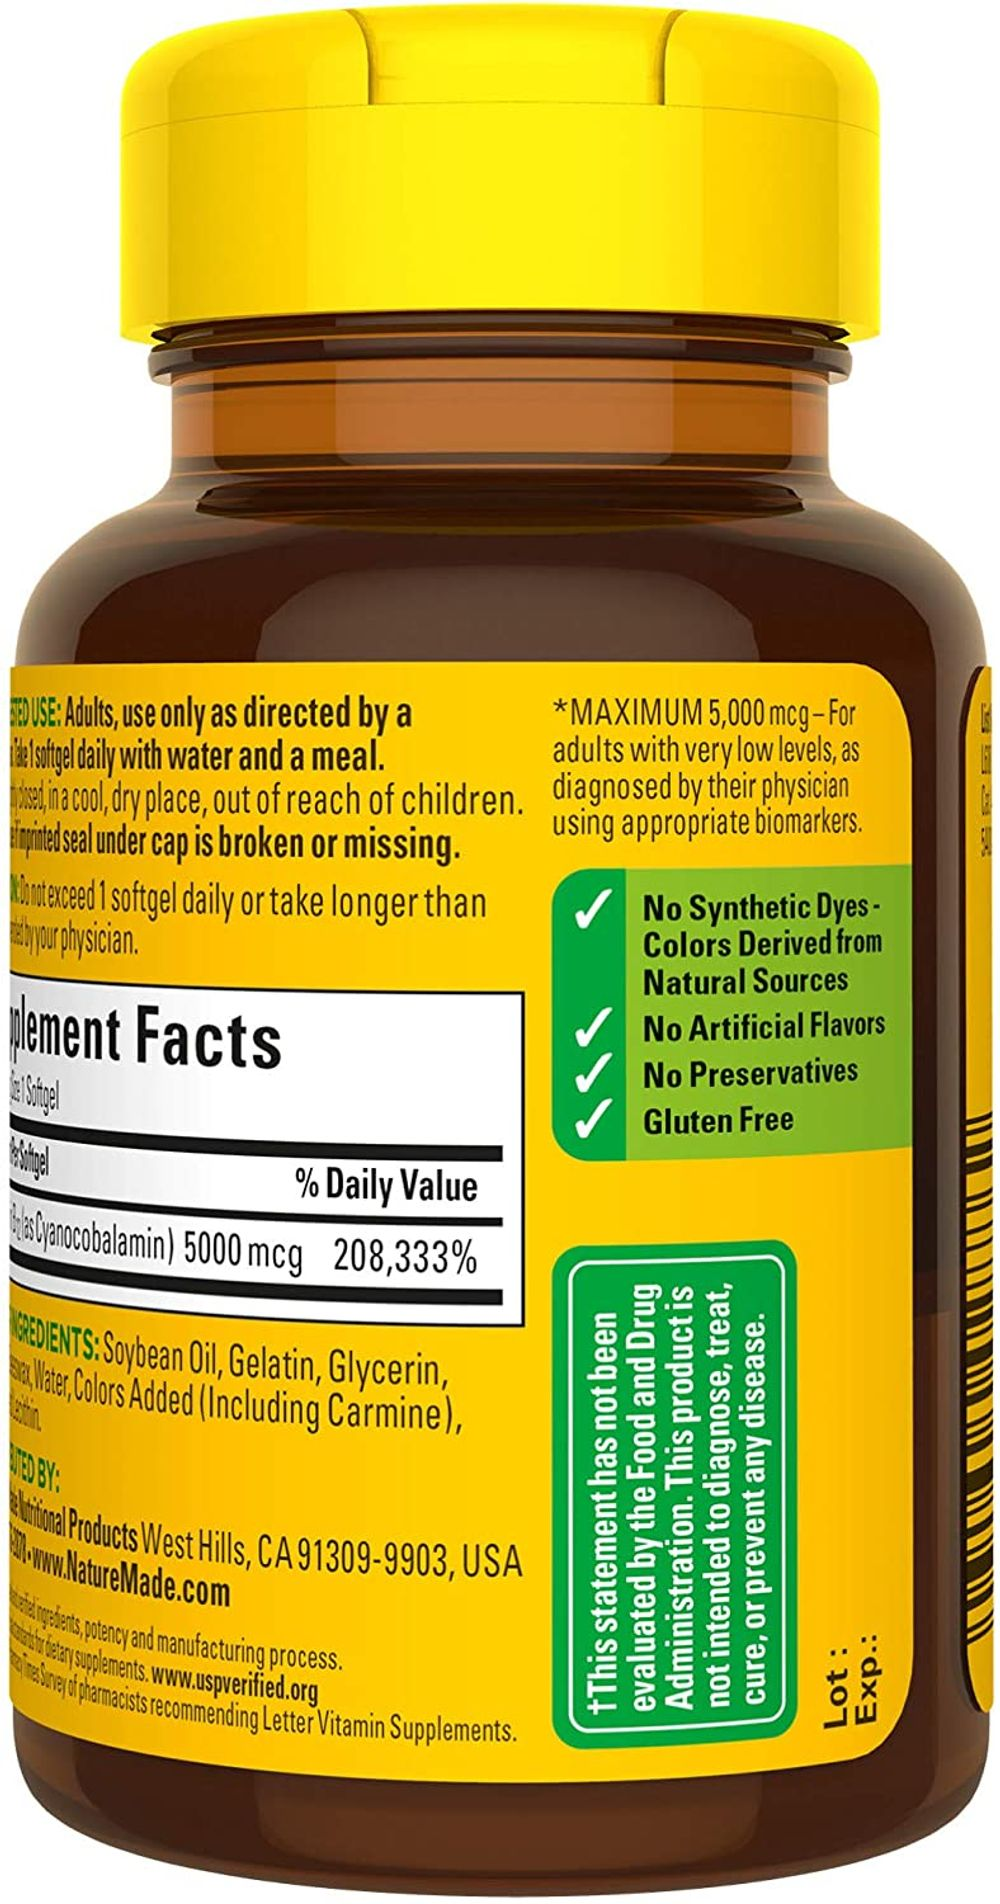 Nature Made Maximum Strength Vitamin B12 5000 mcg, Dietary Supplement for Cellular Energy, 60 Softgels, 60 Day Supply